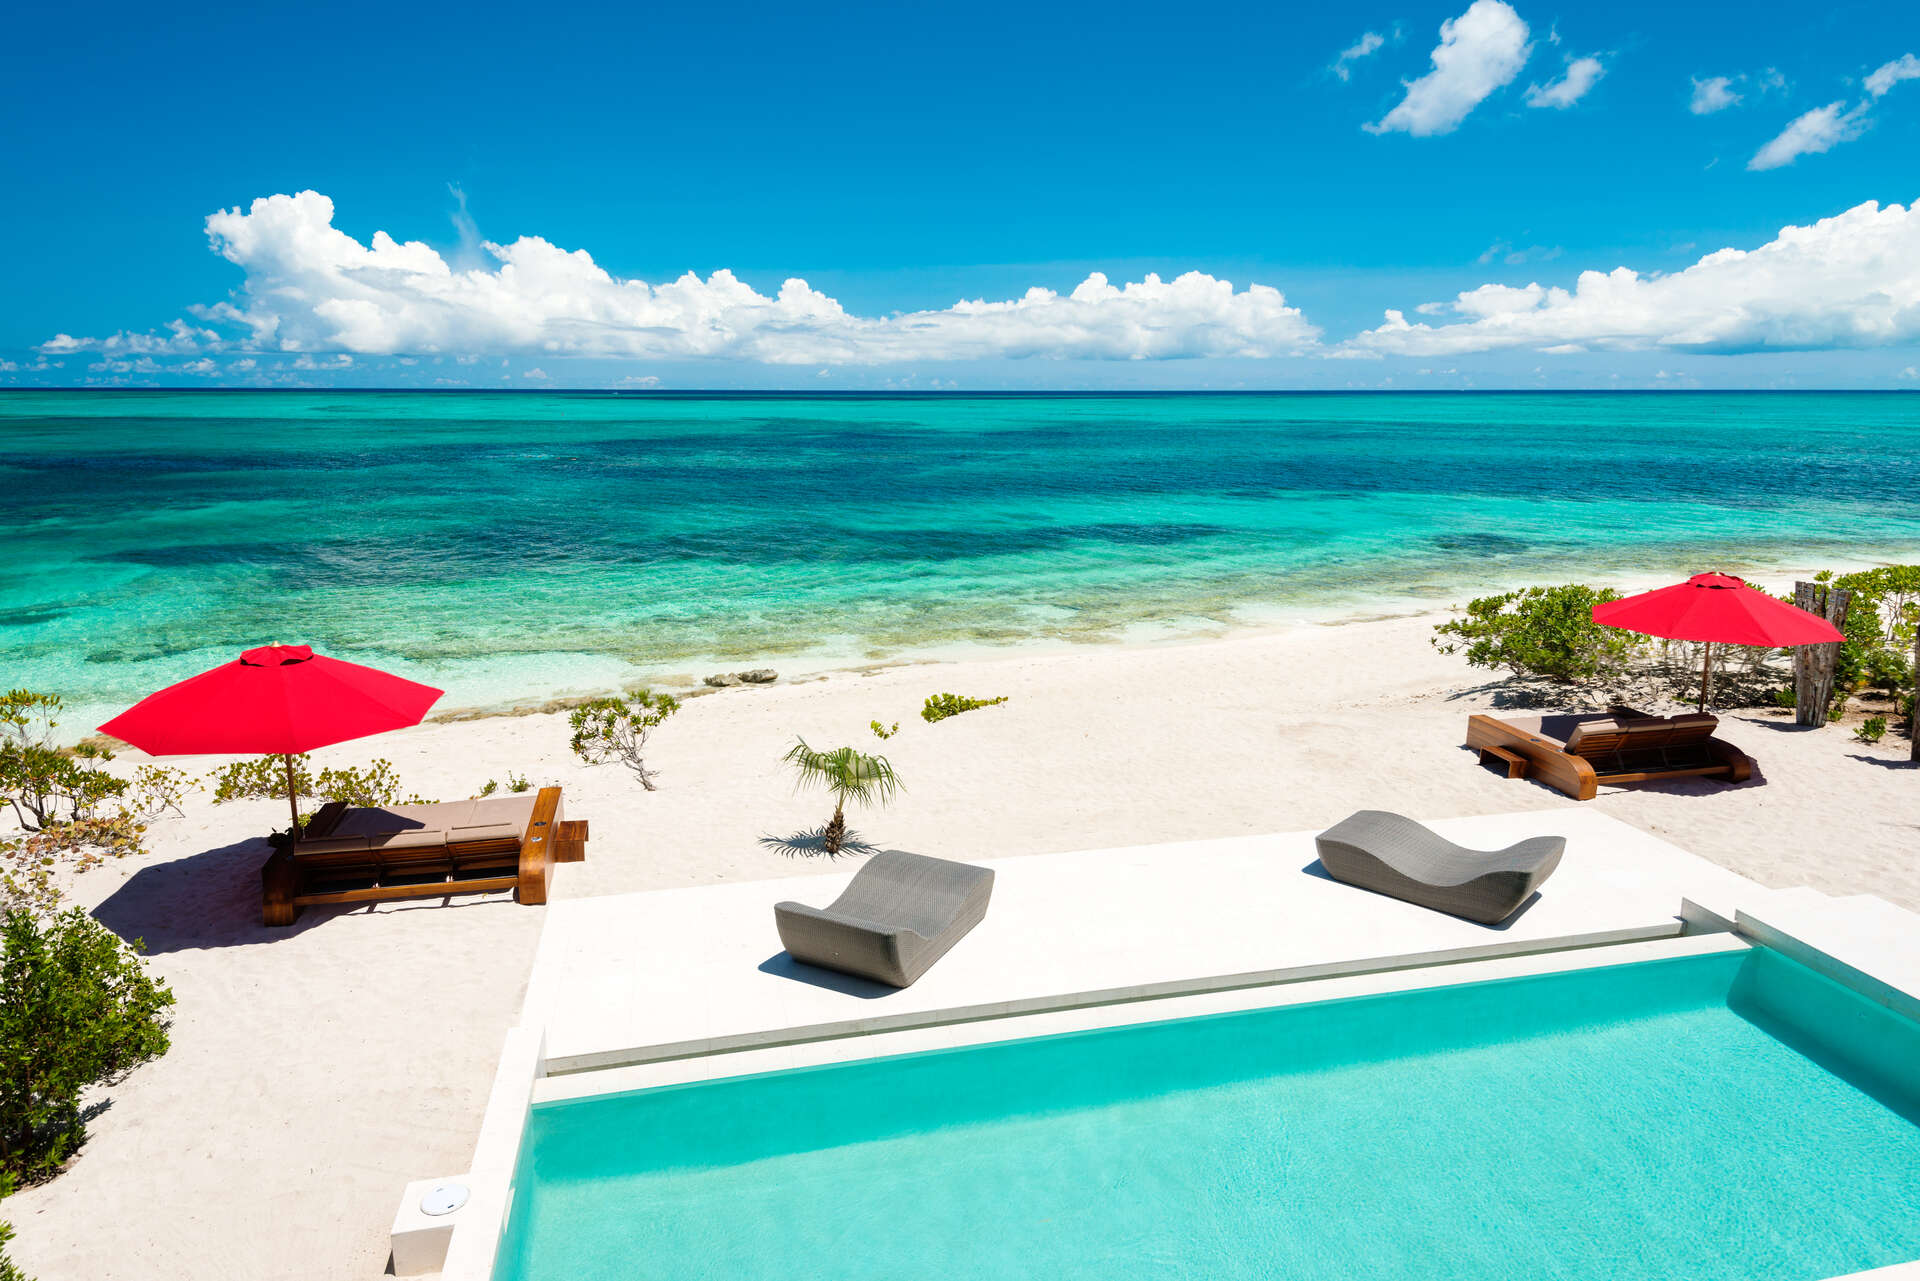 Luxury villa rentals caribbean - Turks and caicos - Providenciales - Grace bay - Beach Kandi - Image 1/14